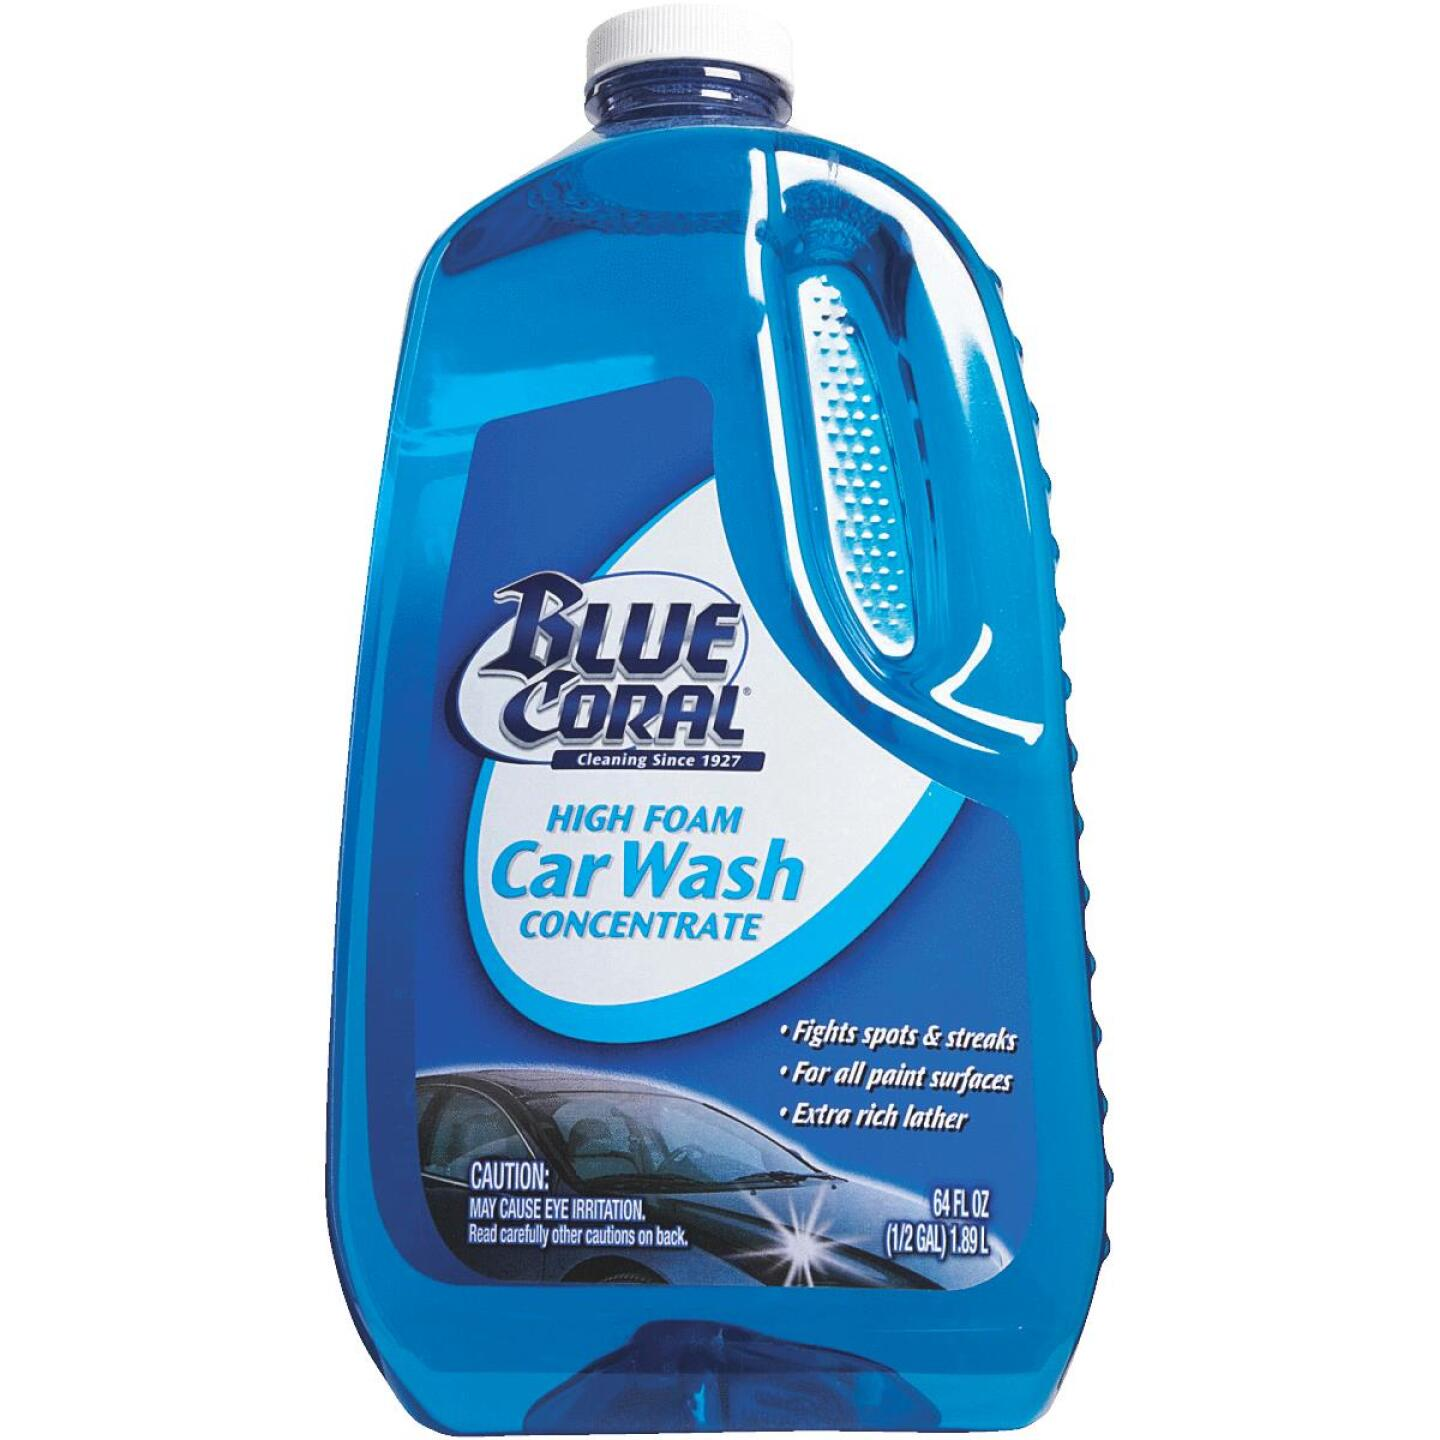 Blue Coral 64 Oz. Liquid High Foam Concentrate Car Wash Image 2